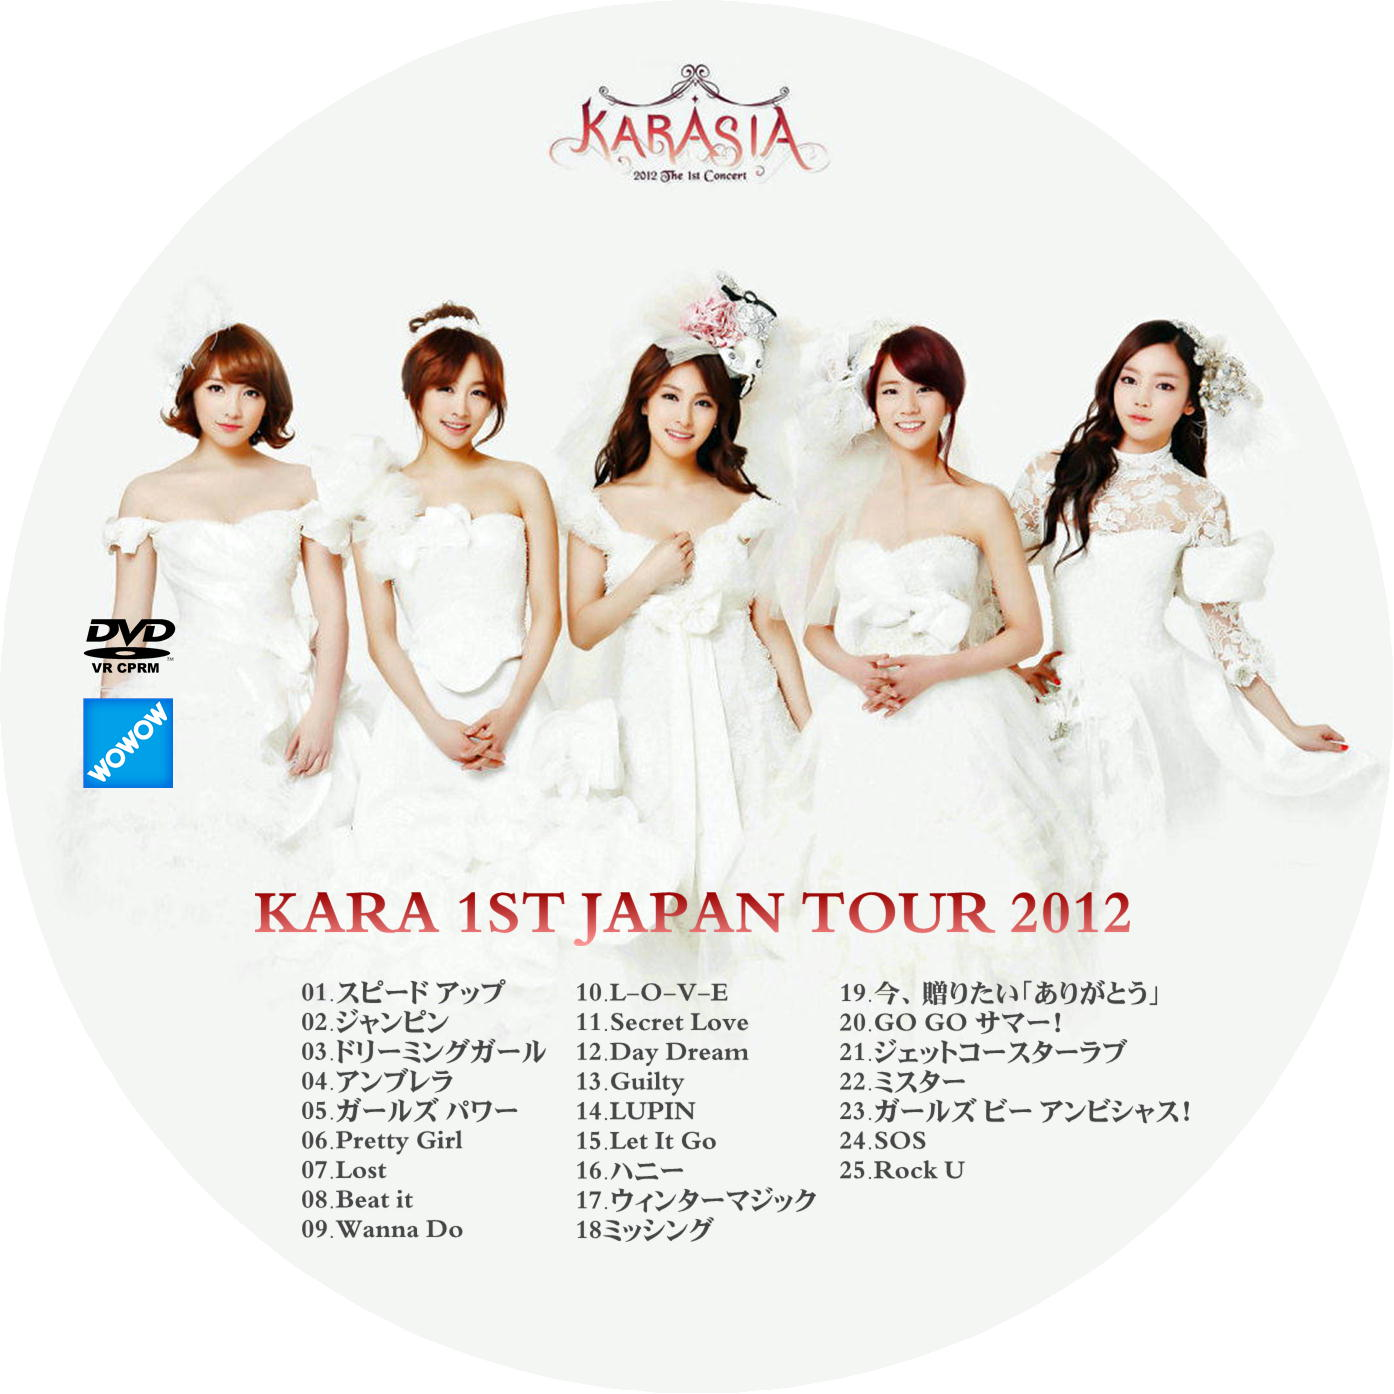 KARA 1ST JAPAN TOUR 2012 DVDラベル